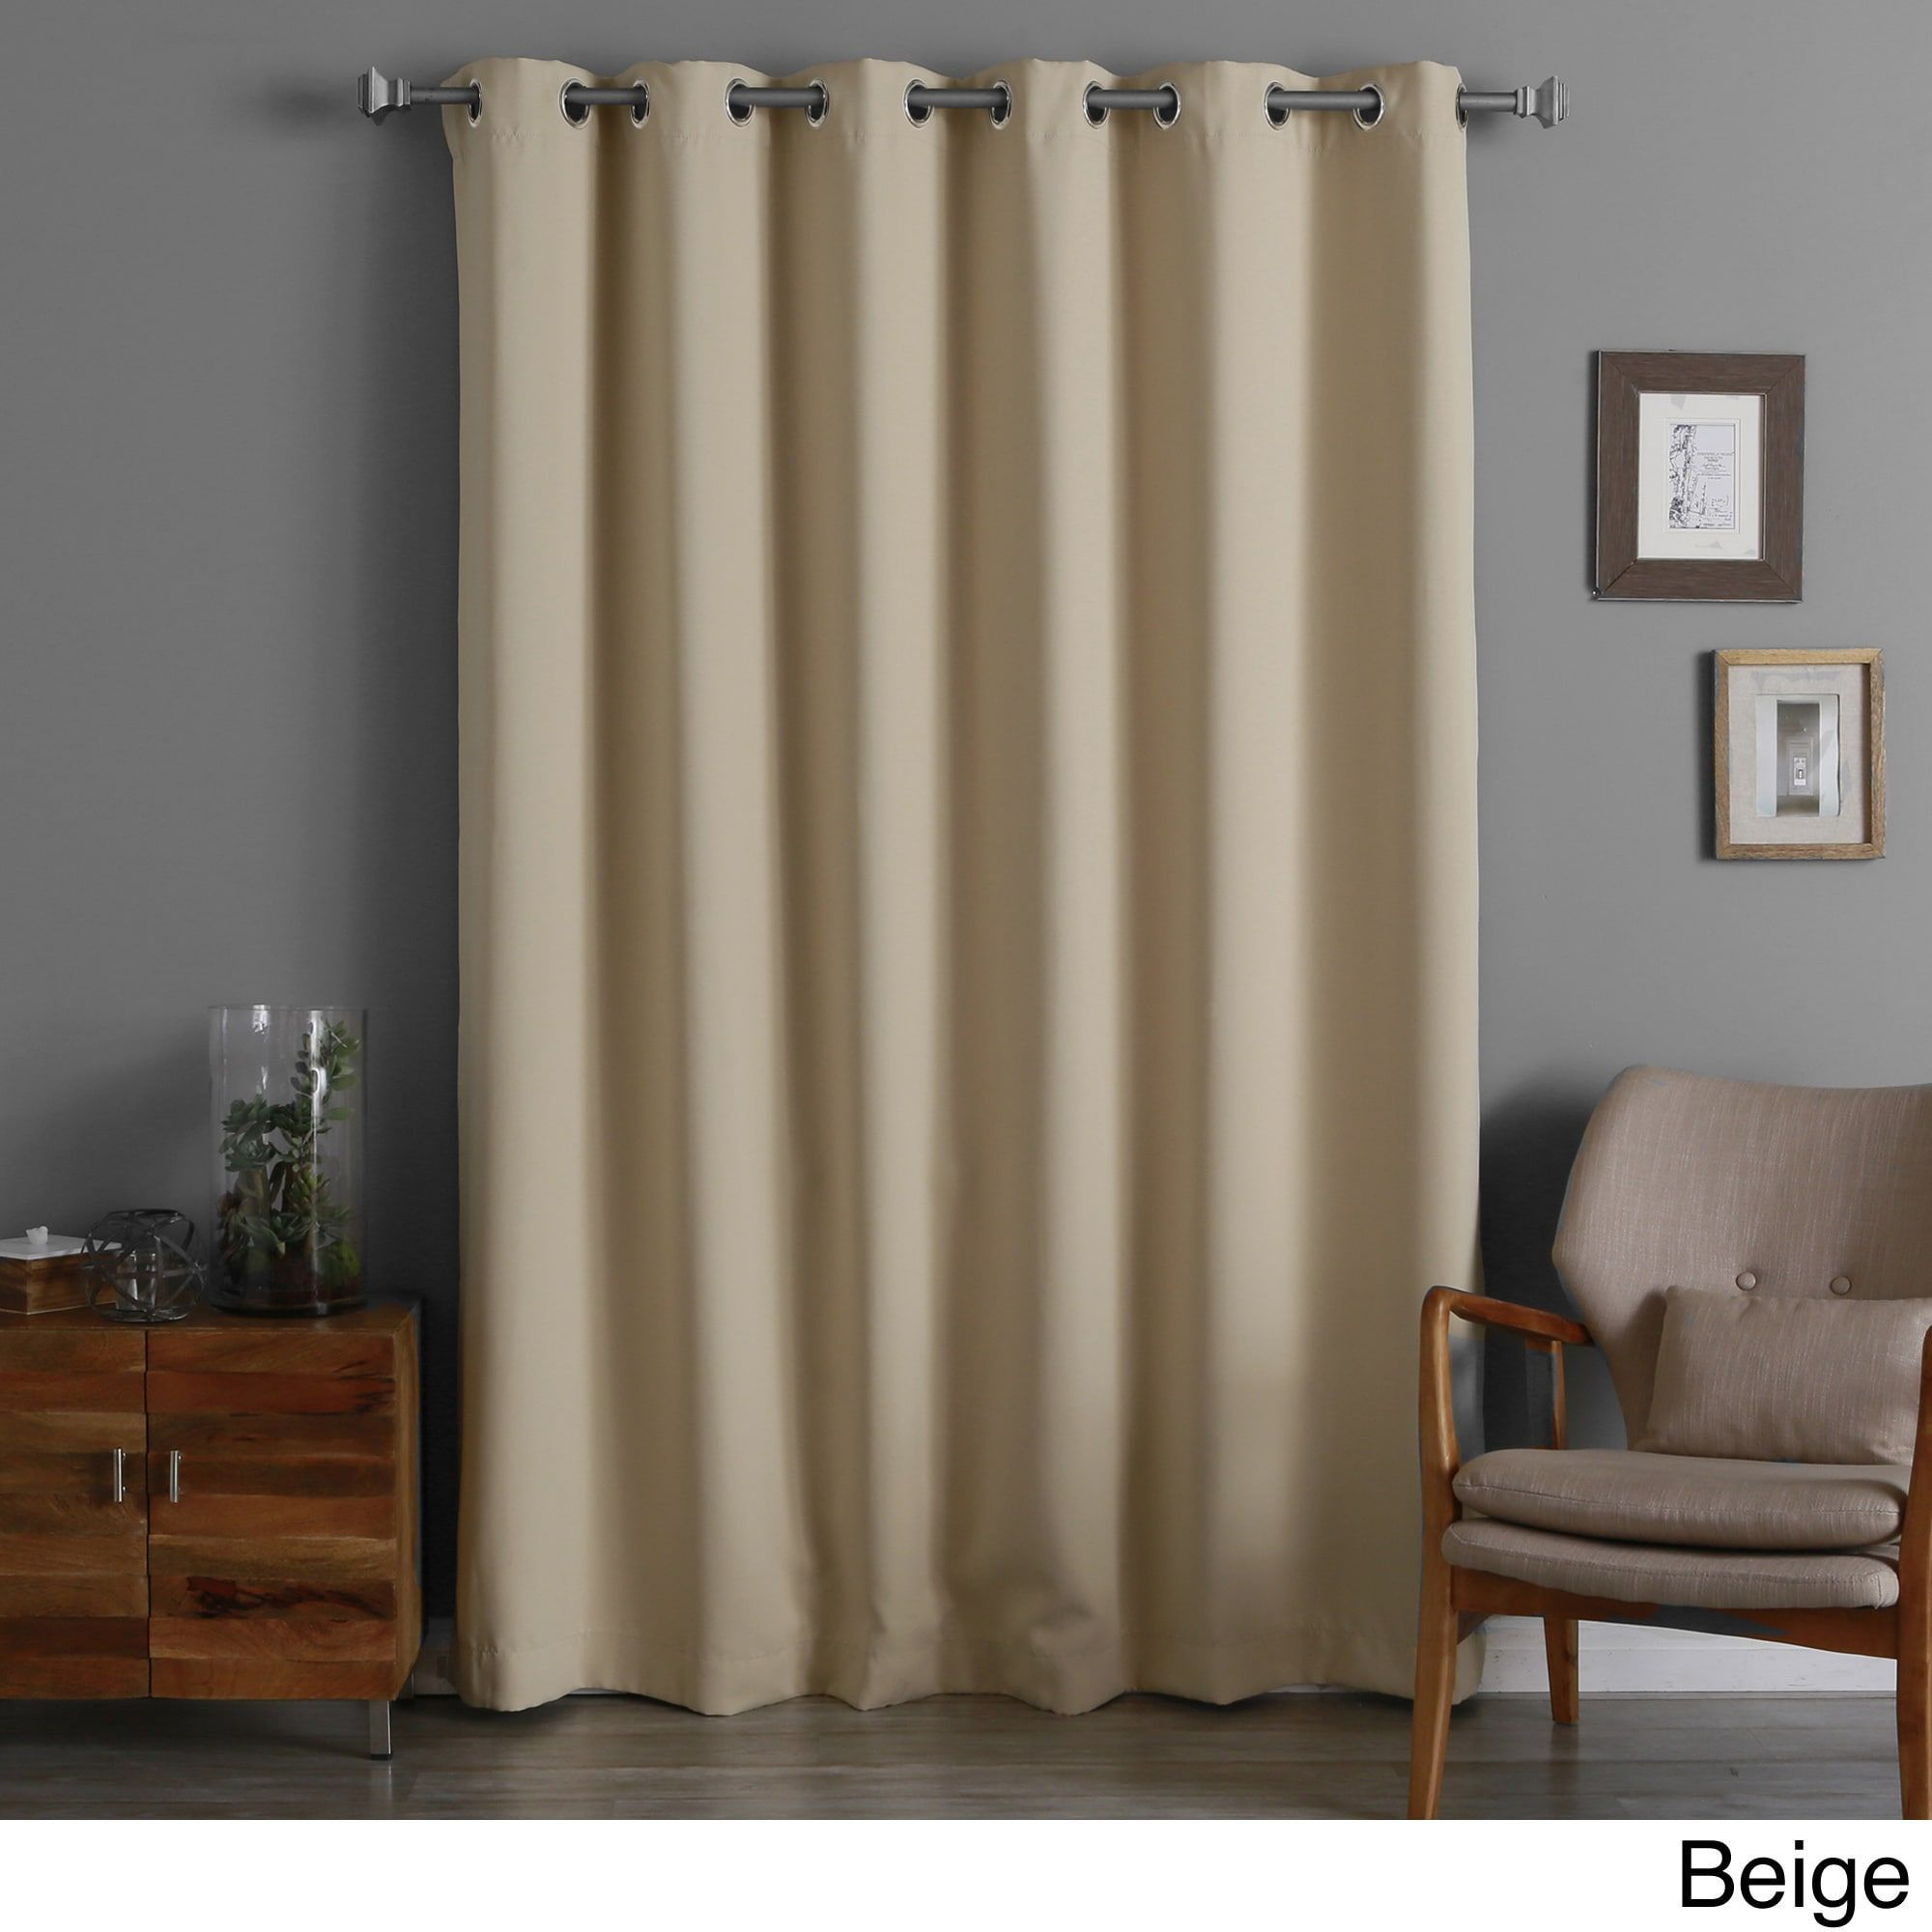 Aurora Home Thermal Insulated 96 Inch Long X 80 Wide Blackout Curtain Panel Beige Bedroomcurtainsmaster Blackoutcurtainideas